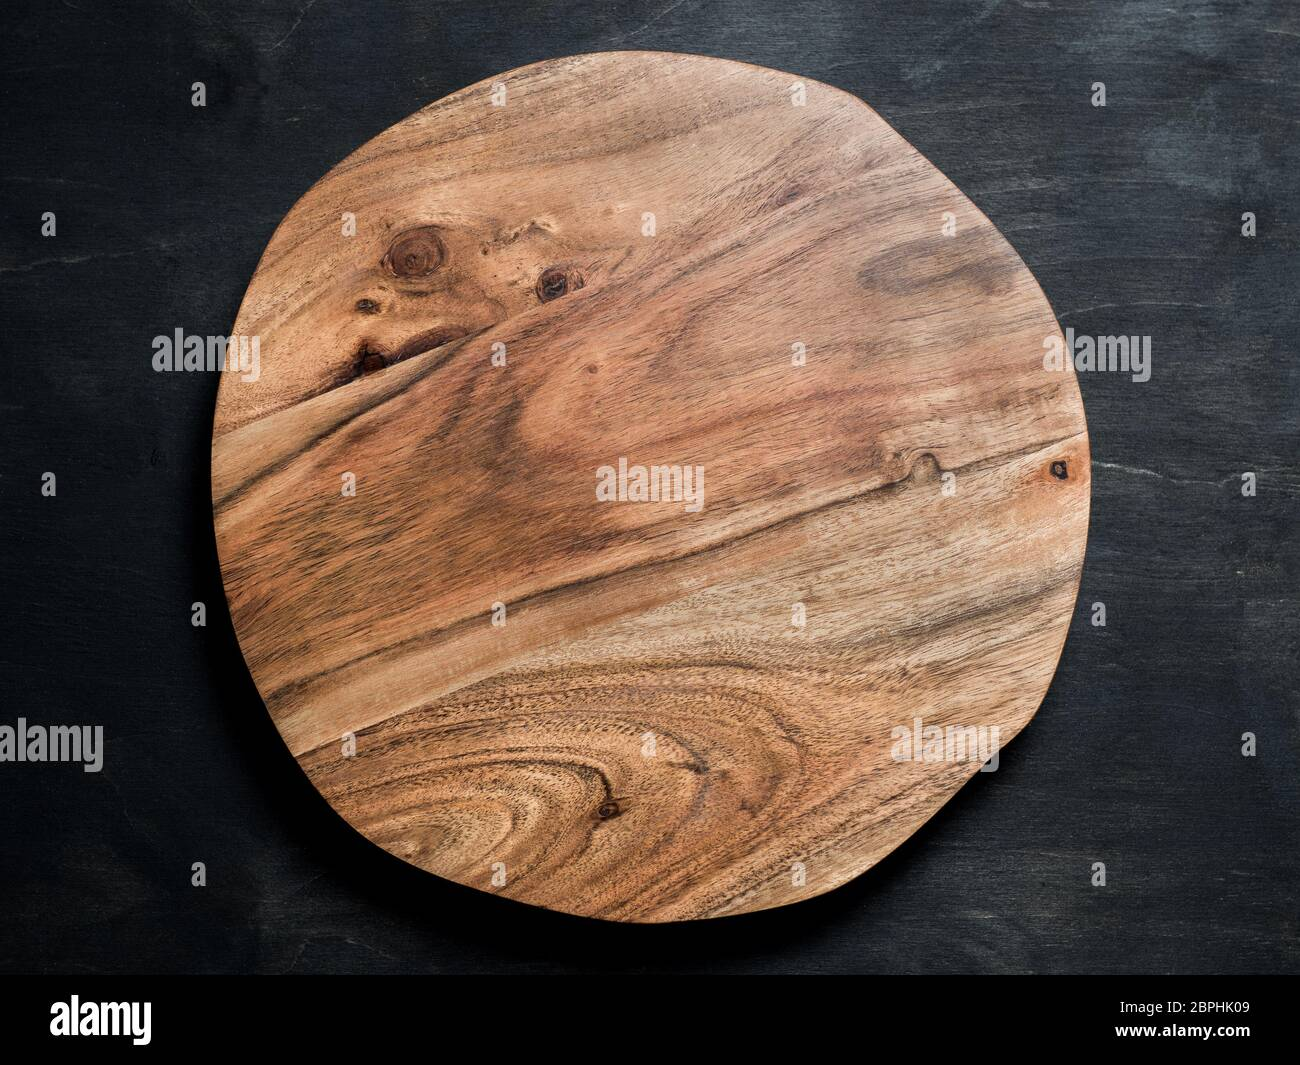 Round Wooden Tray Or Cutting Board On Black Table Top View Of Empty Kitchen Trendy Rustic Wooden Tray Saw Cut Imitation On Black Wooden Background C Stock Photo Alamy